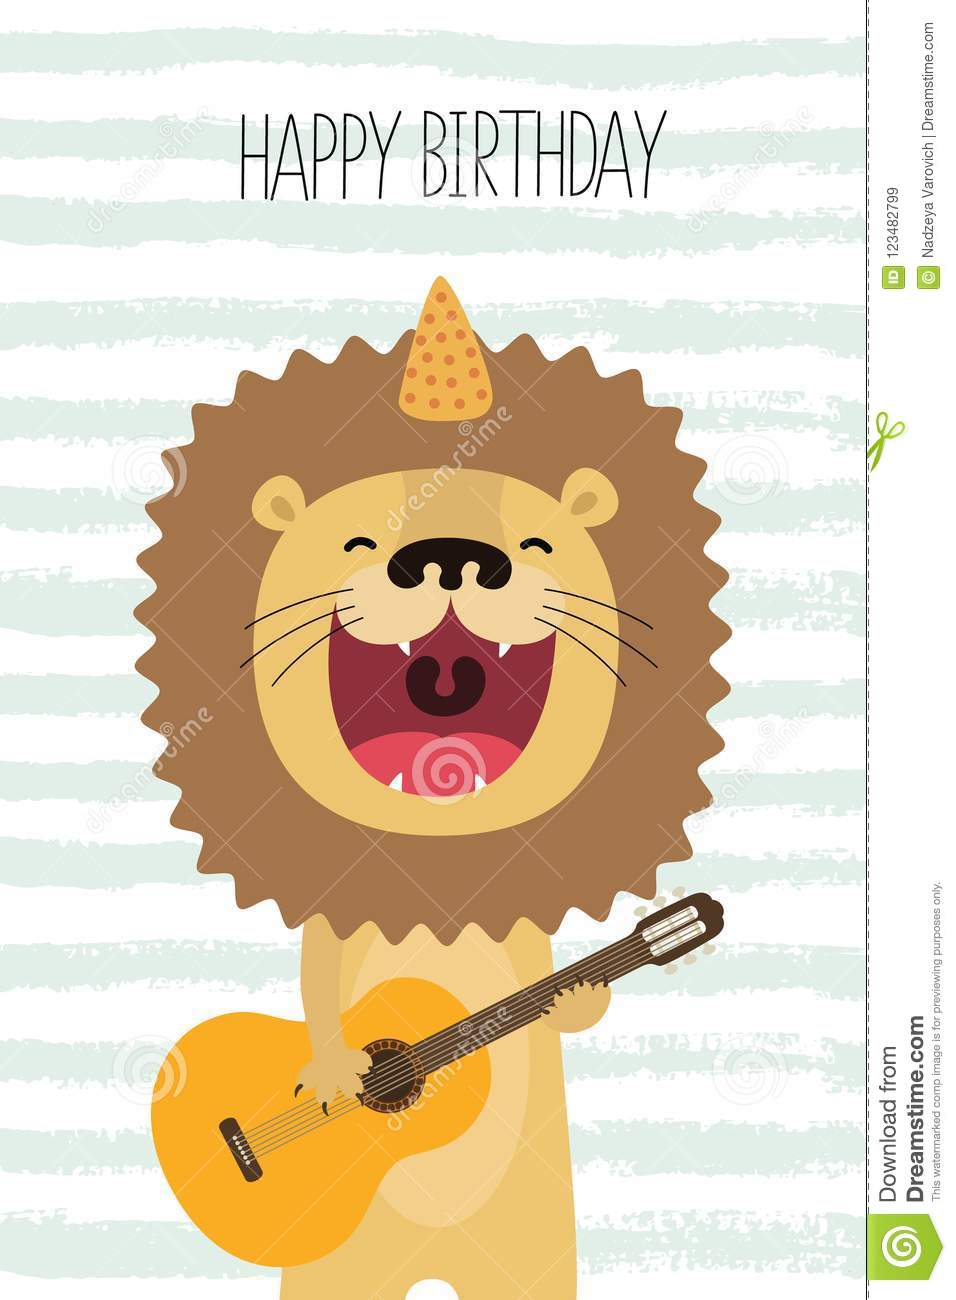 Happy Birthday Acoustic Guitar Www Topsimages Com